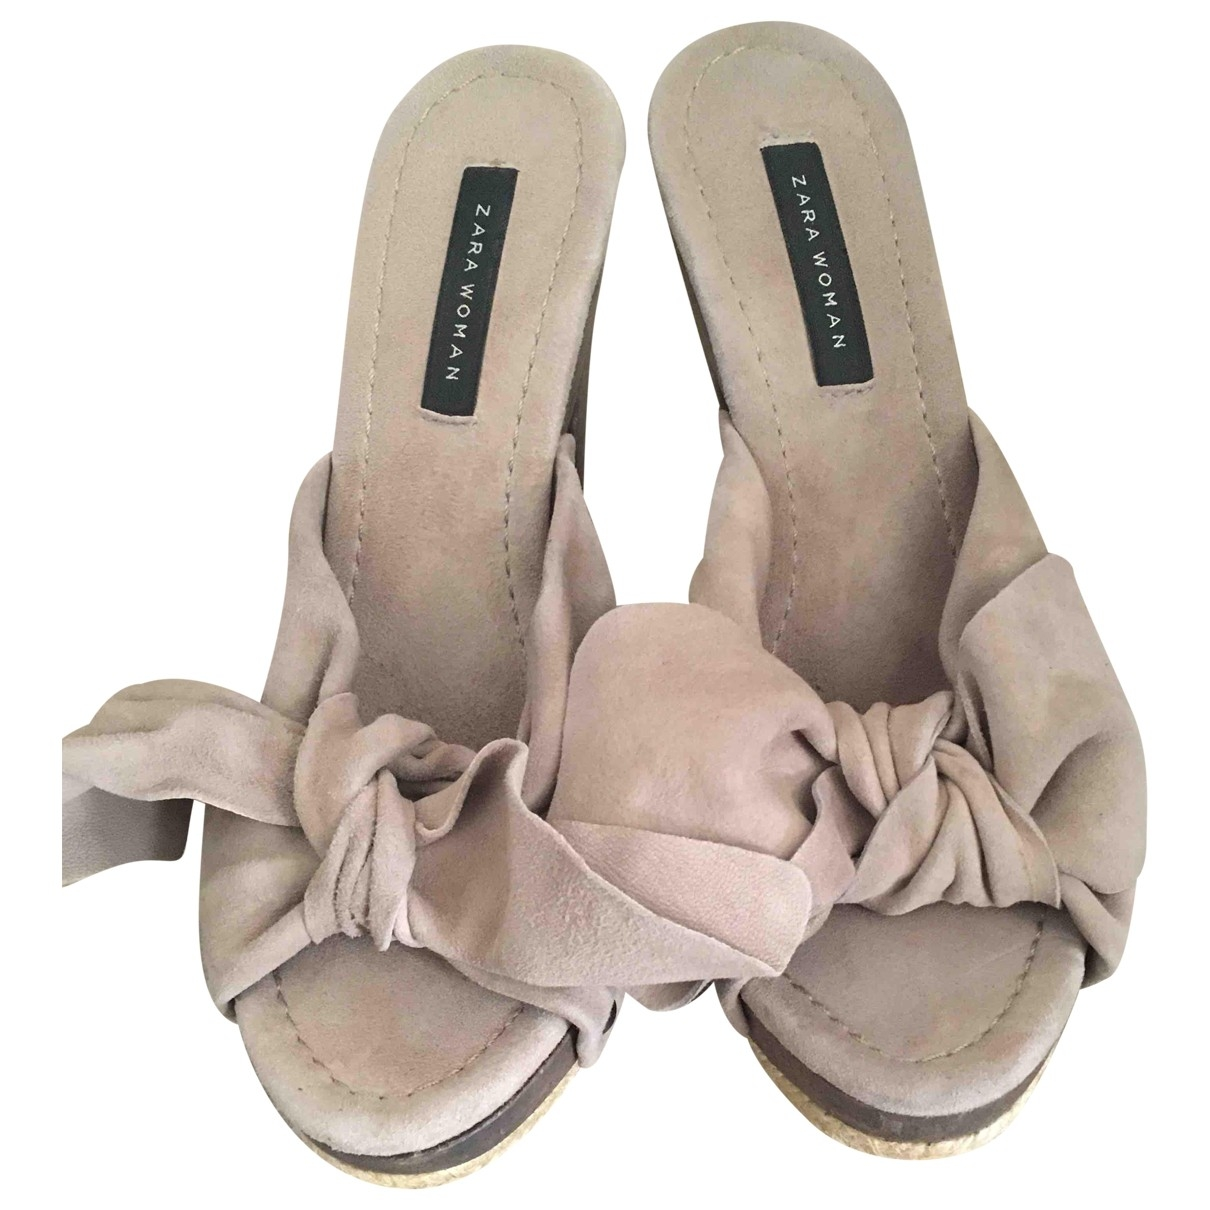 Zara \N Beige Leather Mules & Clogs for Women 36 EU